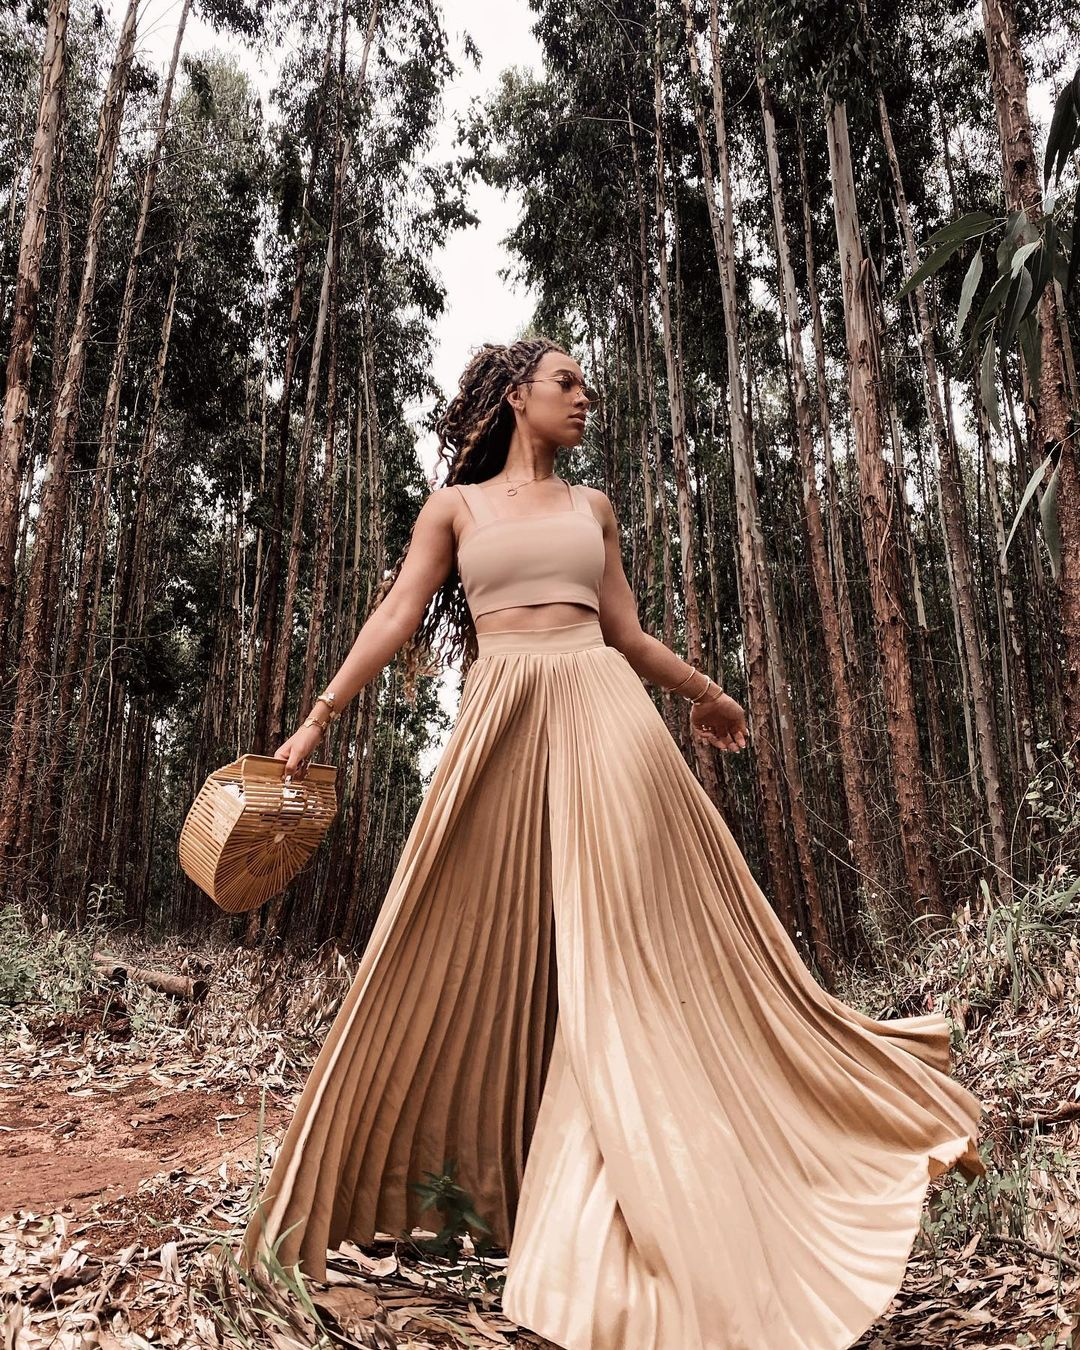 Sarah Langa Struts With Glam In Flare Skirt